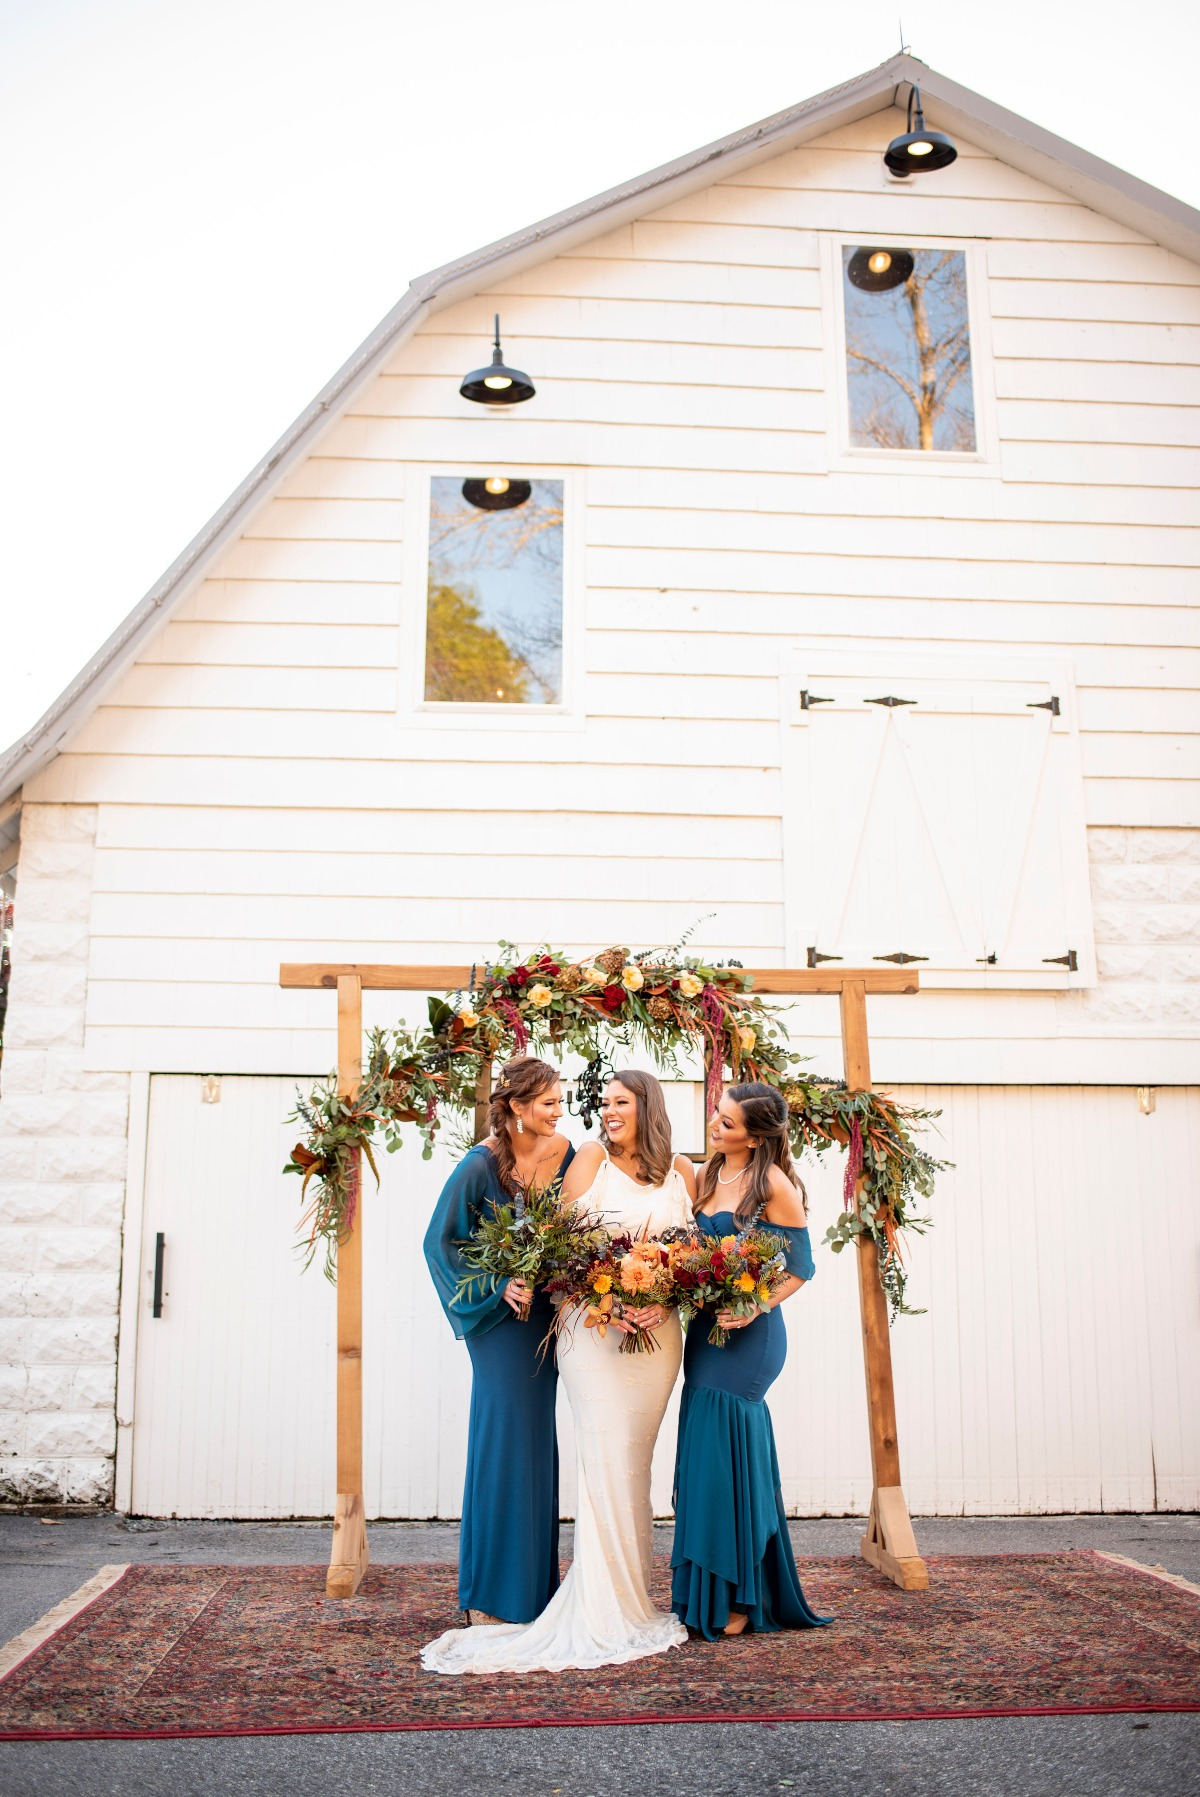 Bridesmaids style in blue